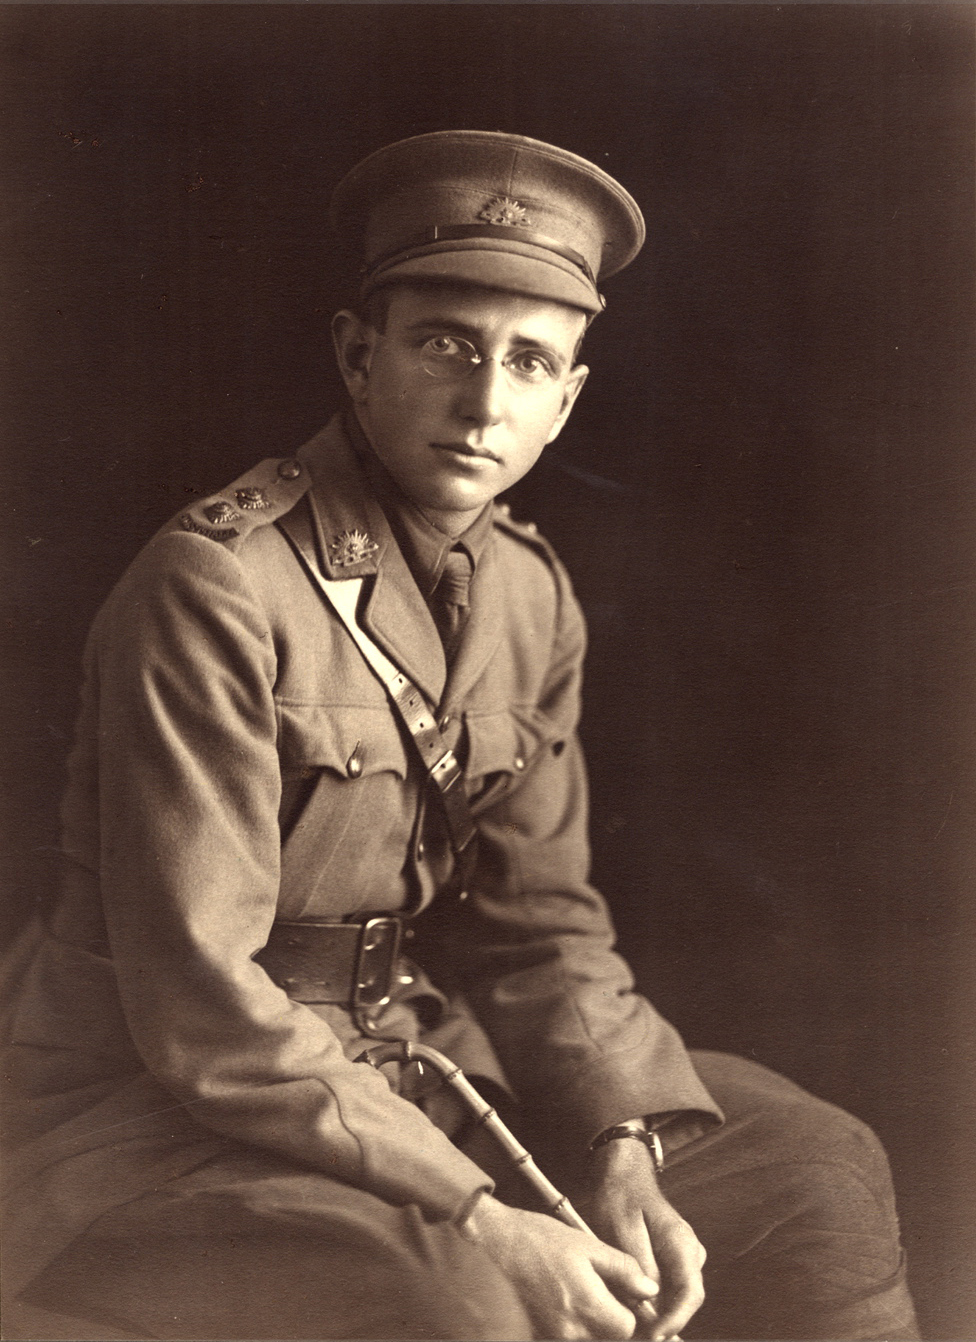 Black and white photograph of young bespectacled man in uniform